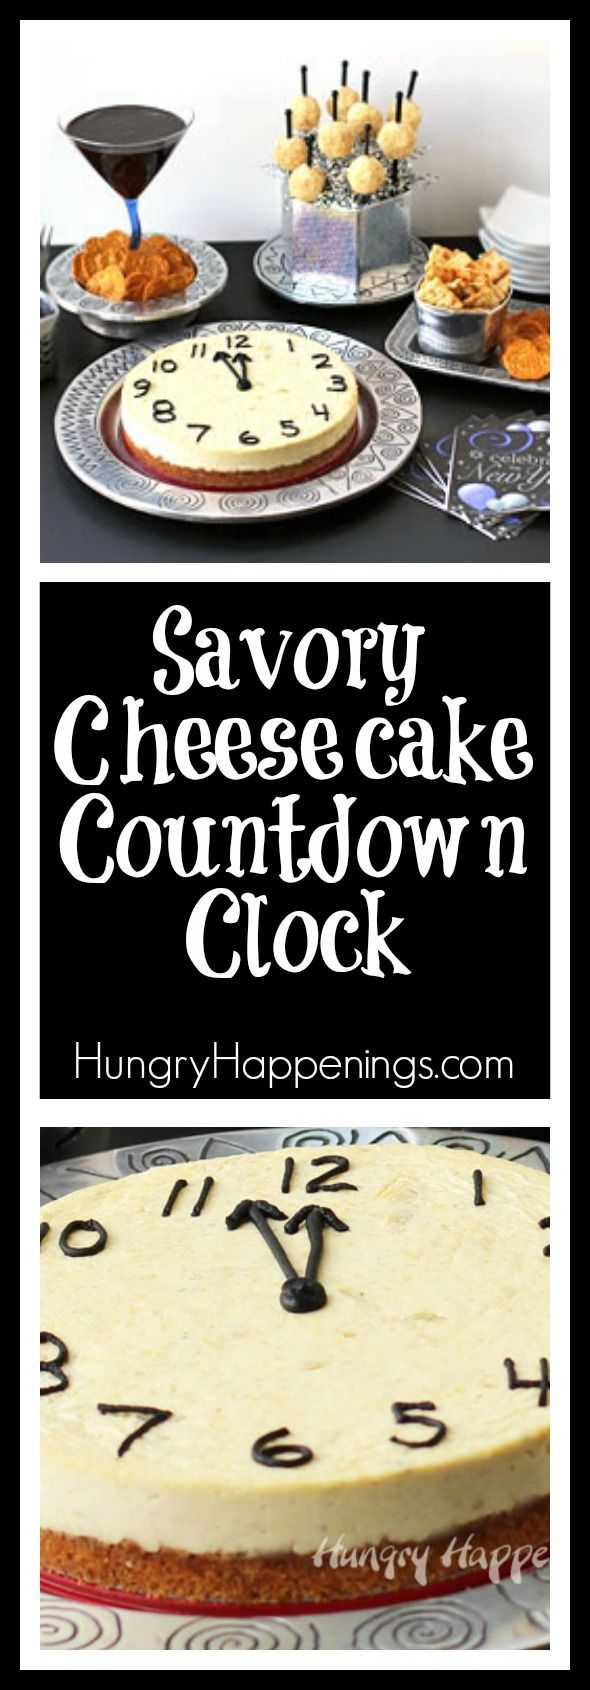 If you are hosting a New Year's Eve party this year and are looking for some holiday recipes to make for your guests, you're going to love the New Year's Eve Party Food I created using Town House Crackers including a Parmesan Artichoke Cheesecake and Mini Time's Square Cheese Balls as part of a sponsored post for #CollectiveBias. #WaysToWow